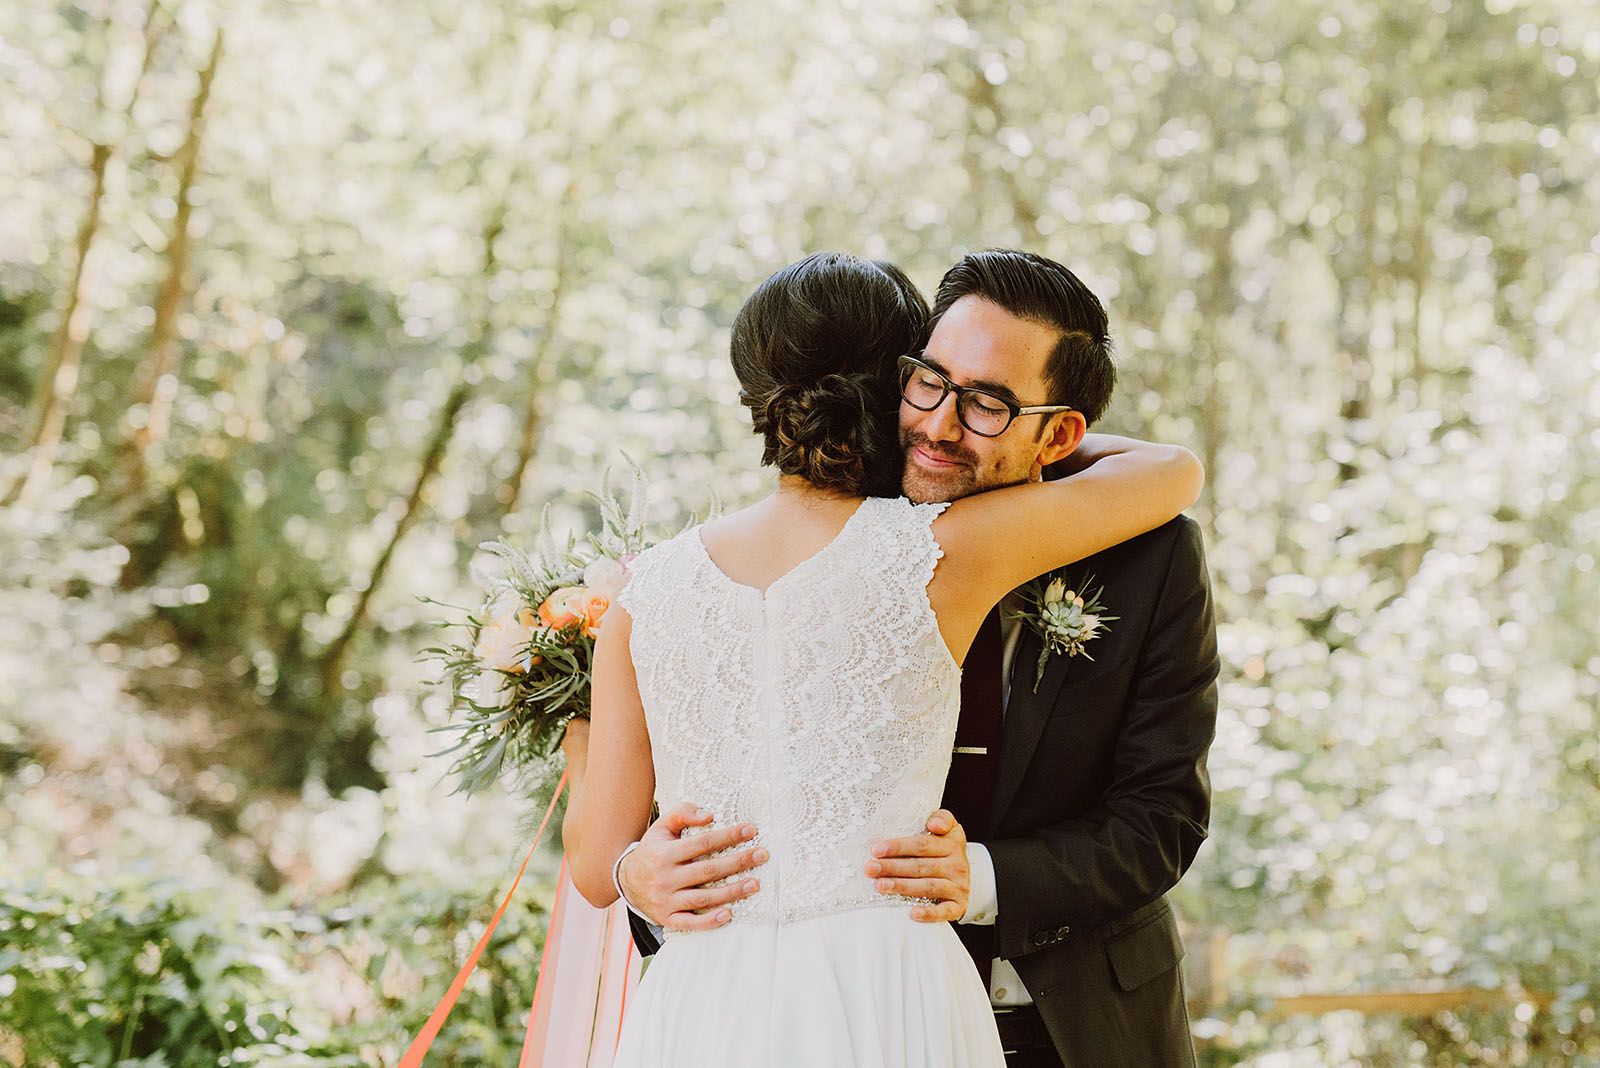 Bride and Groom's First Look in MacLeay Park | Portland Castaway Wedding